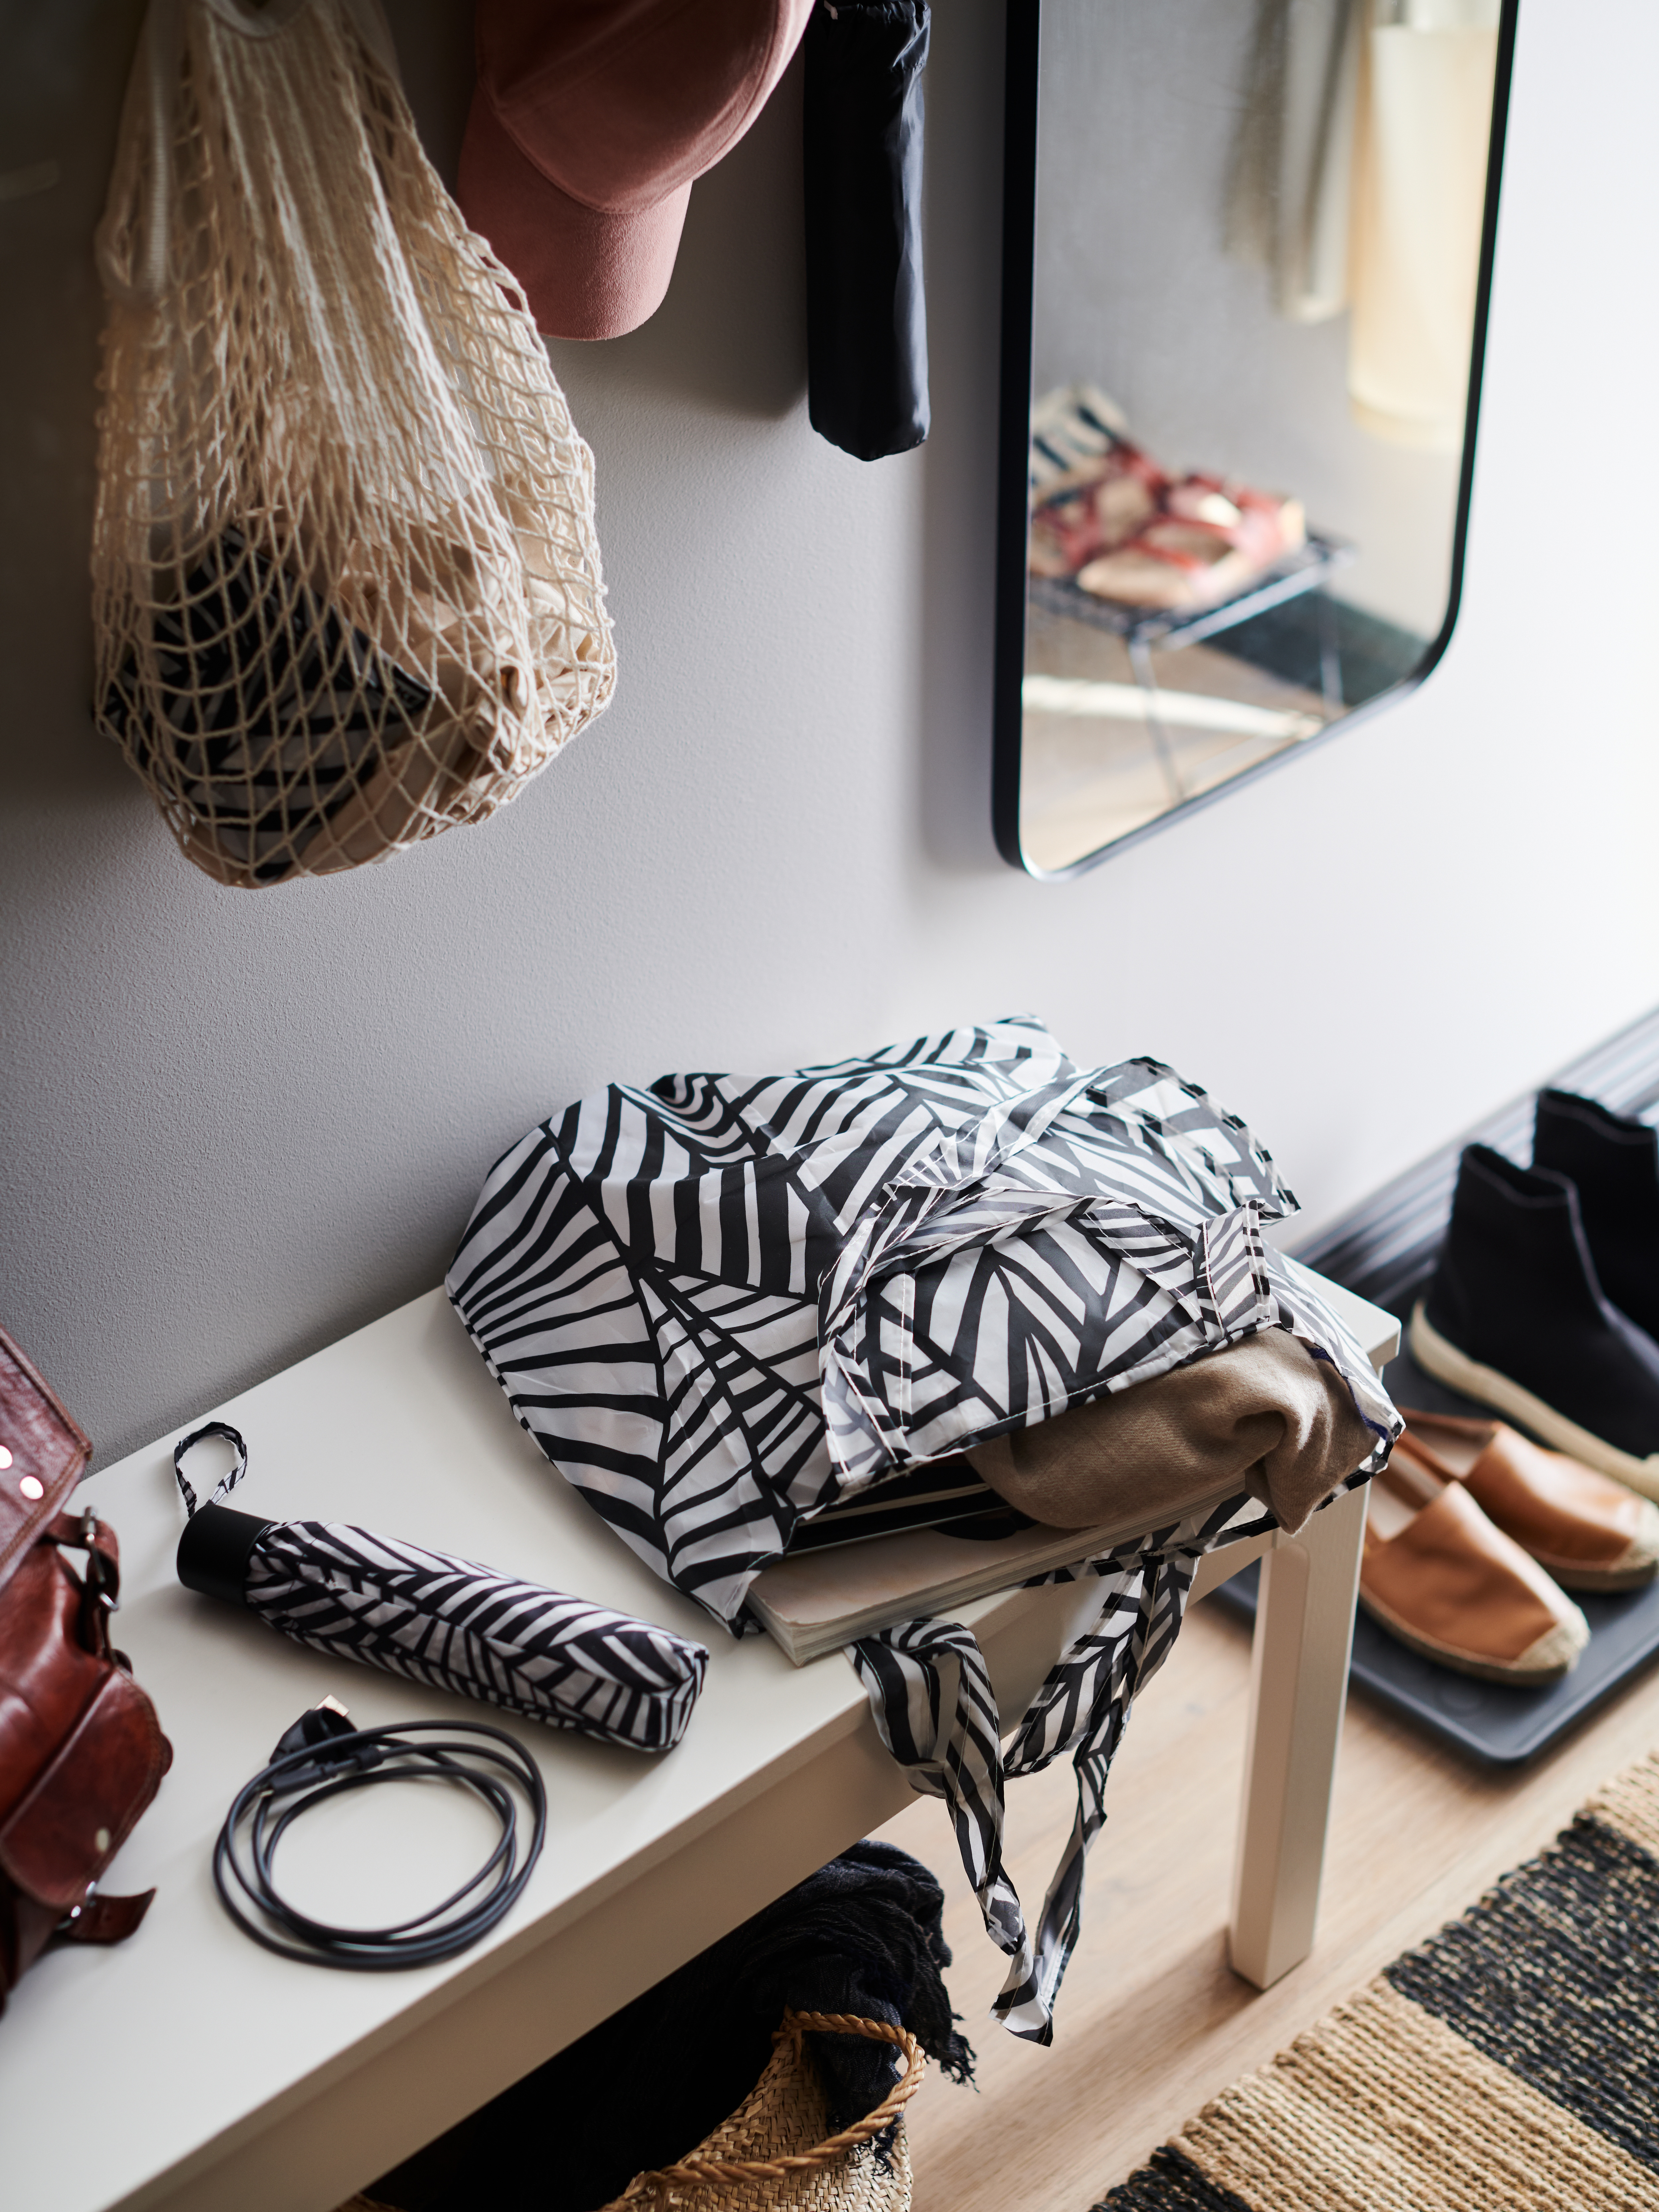 A hallway with a mirror, shoes on a mat, and a white bench with a SKYNKE bag, a KNALLA umbrella and a LILLHULT USB cord.